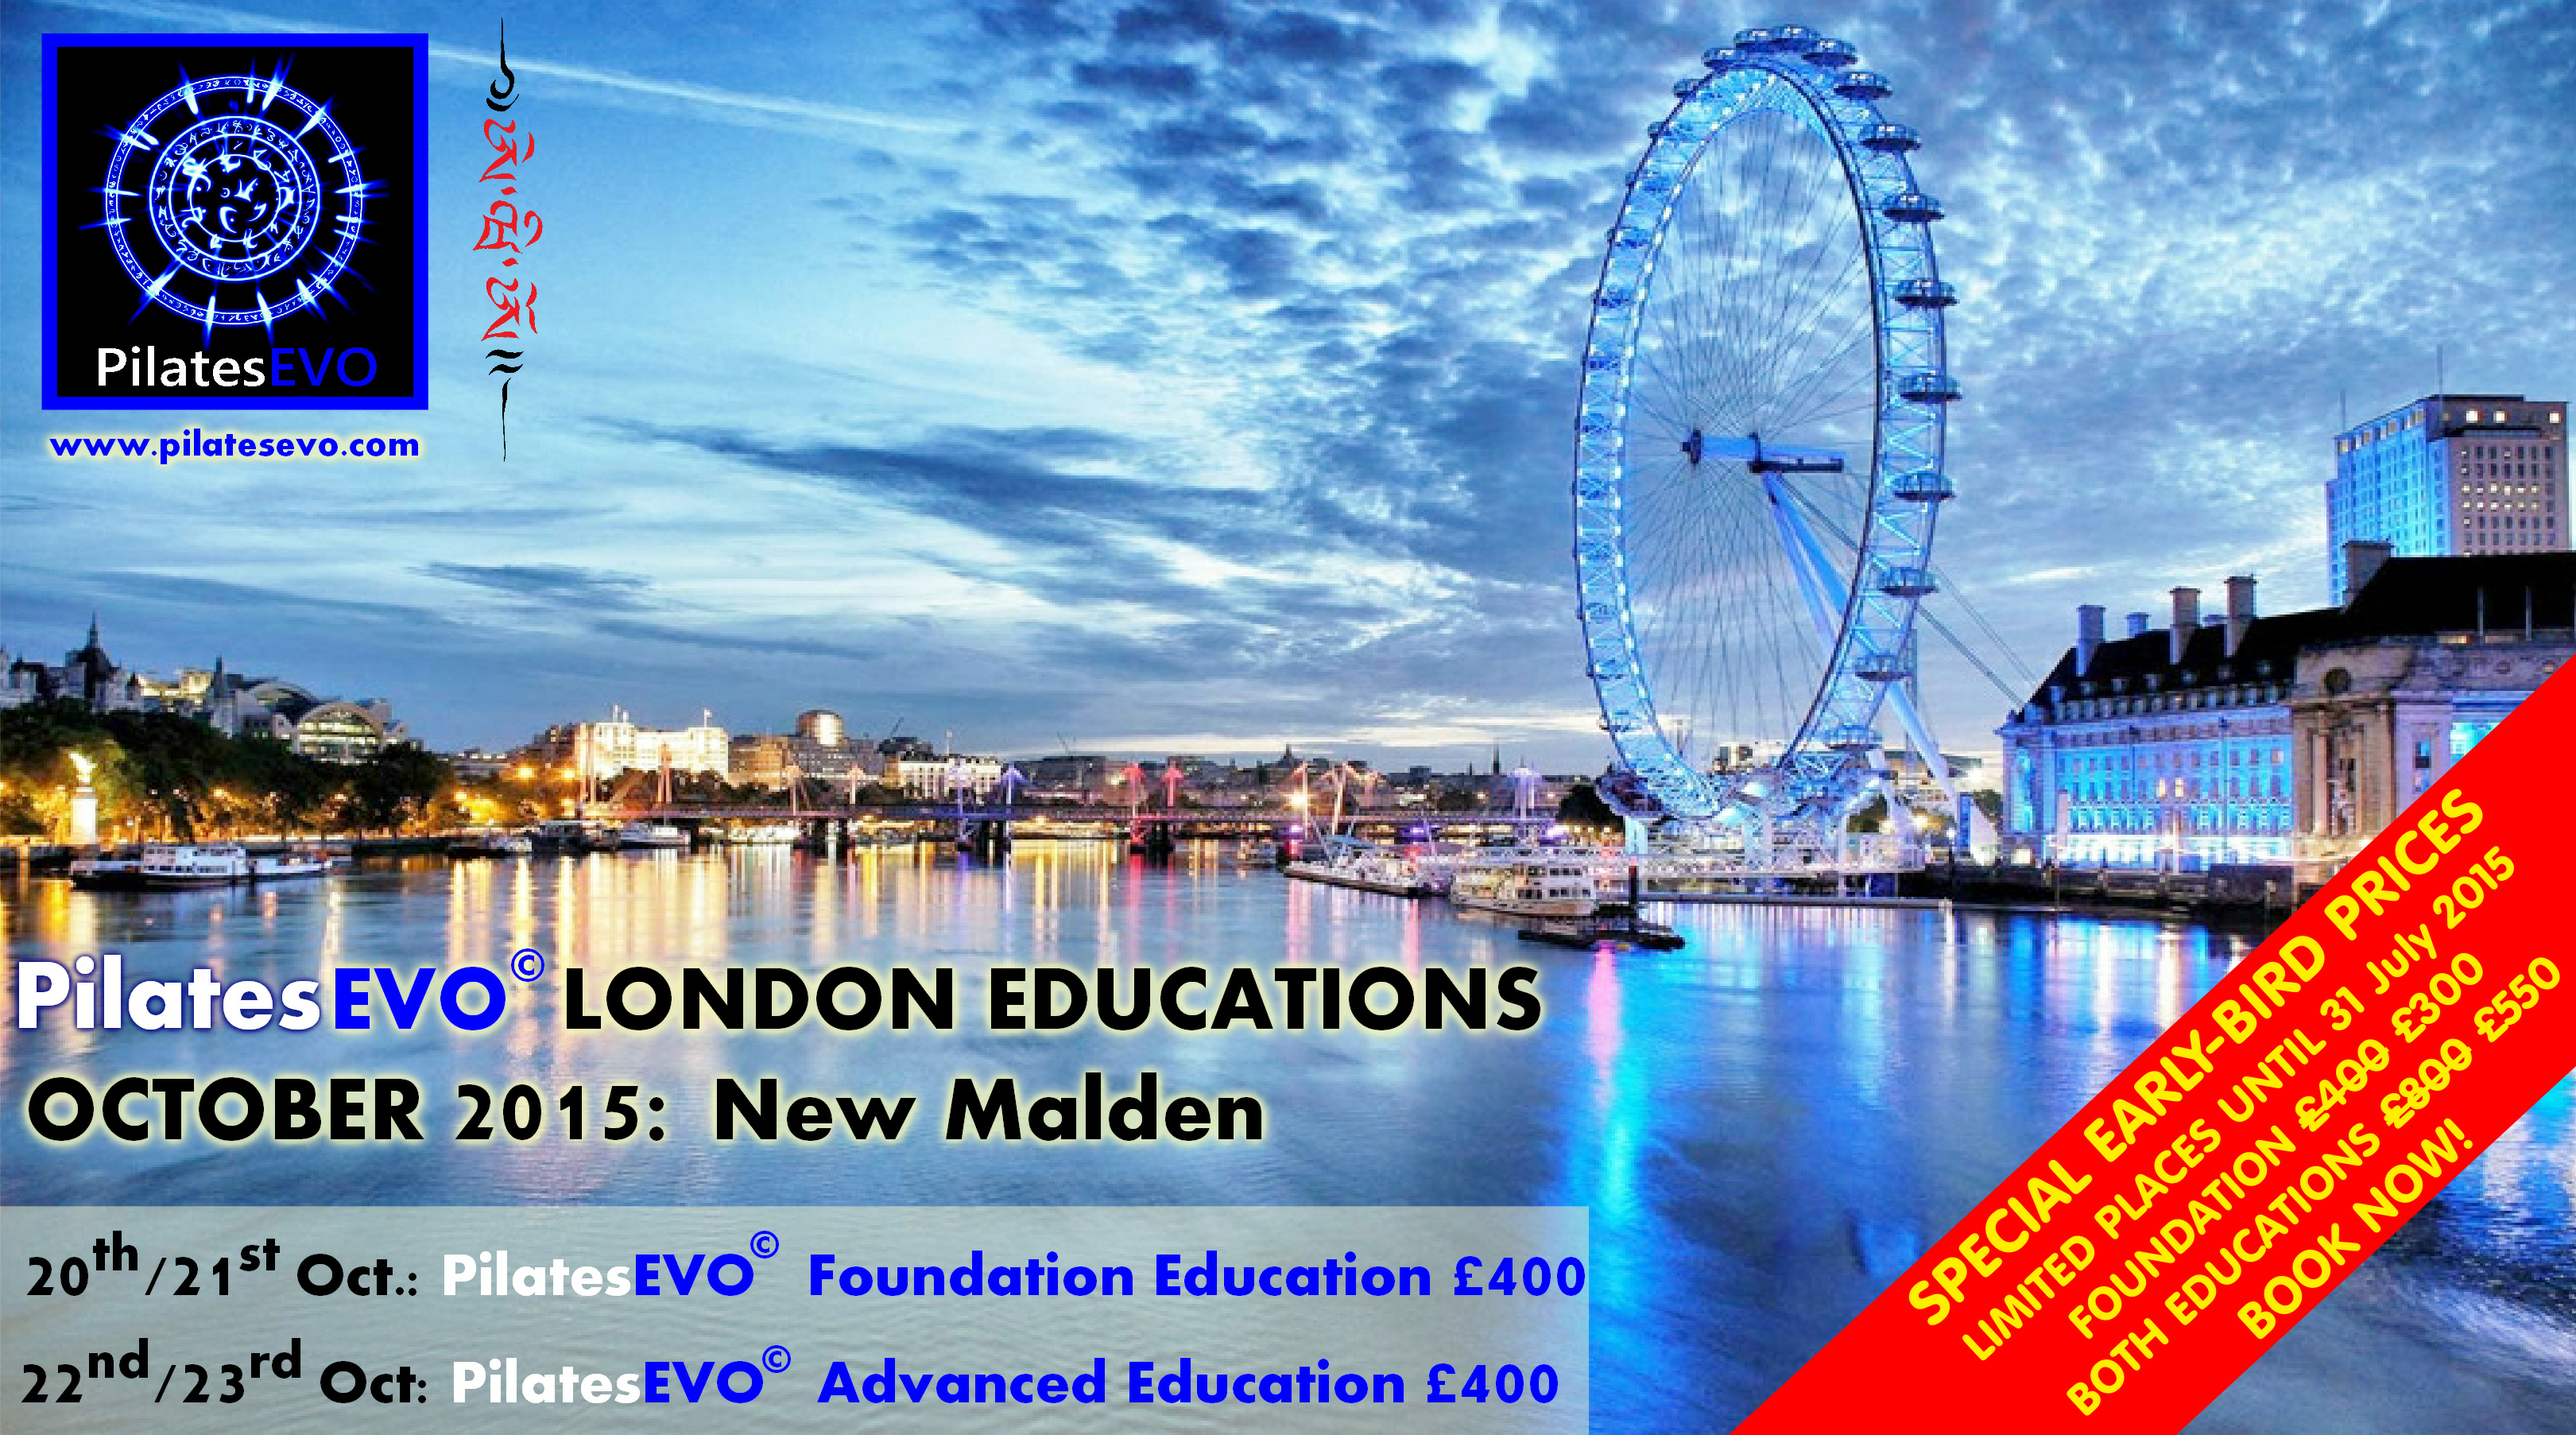 PilatesEVO London Educations Oct 2015 v.1